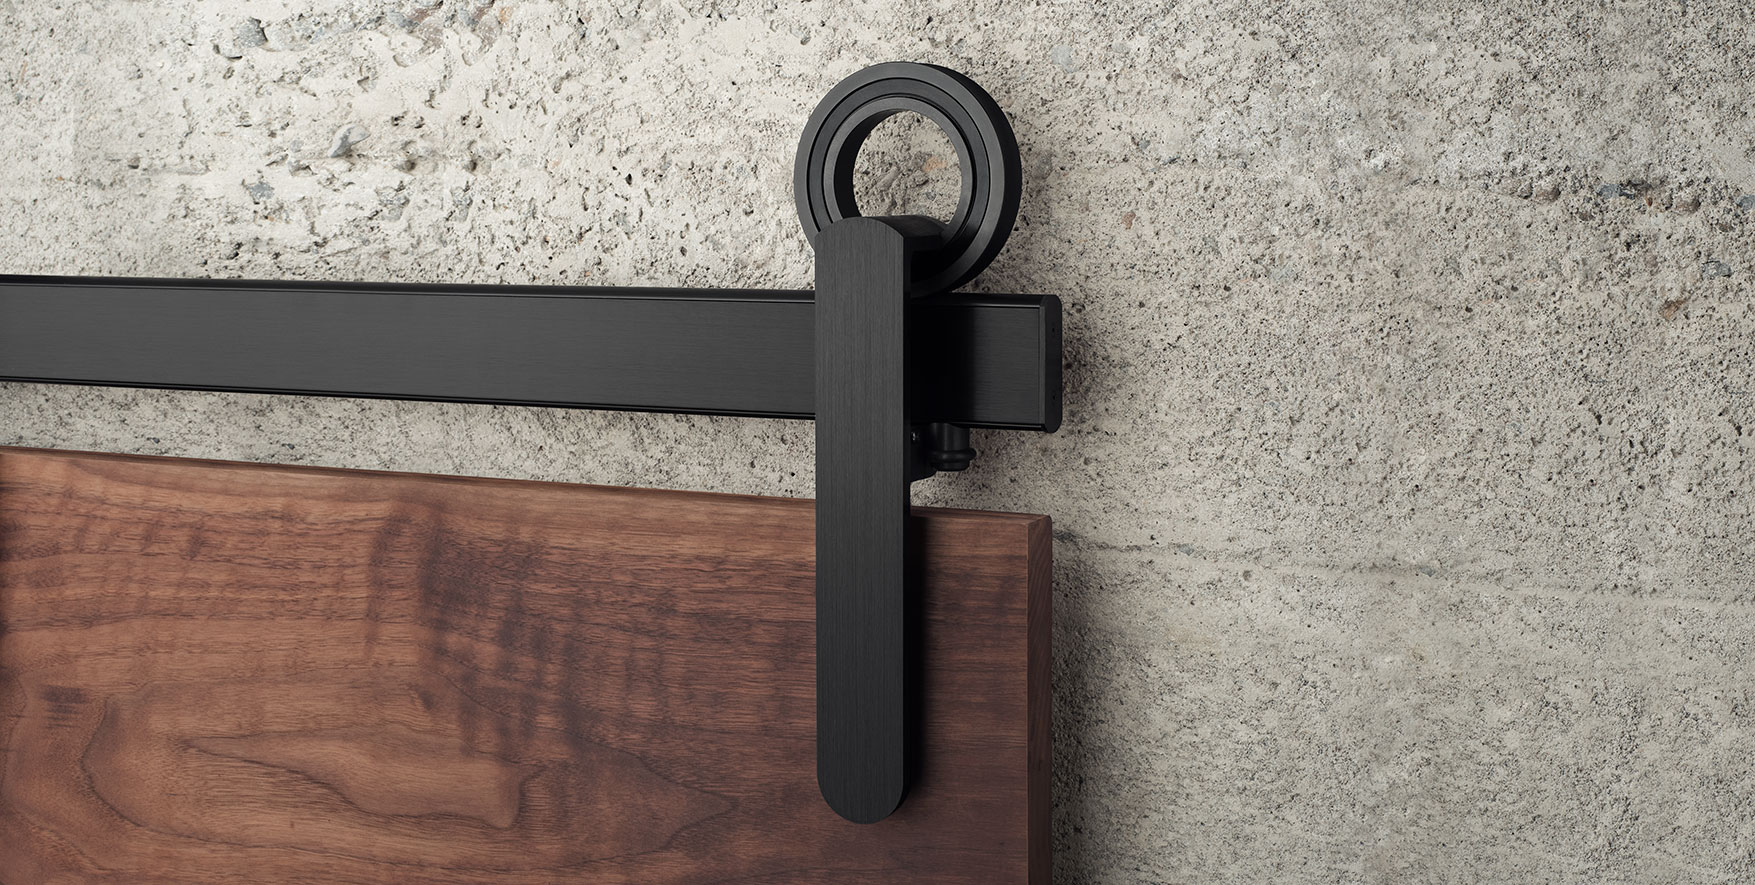 Modern Barn Door Hardware Featuring Hubless Bearings| Baldur by ...